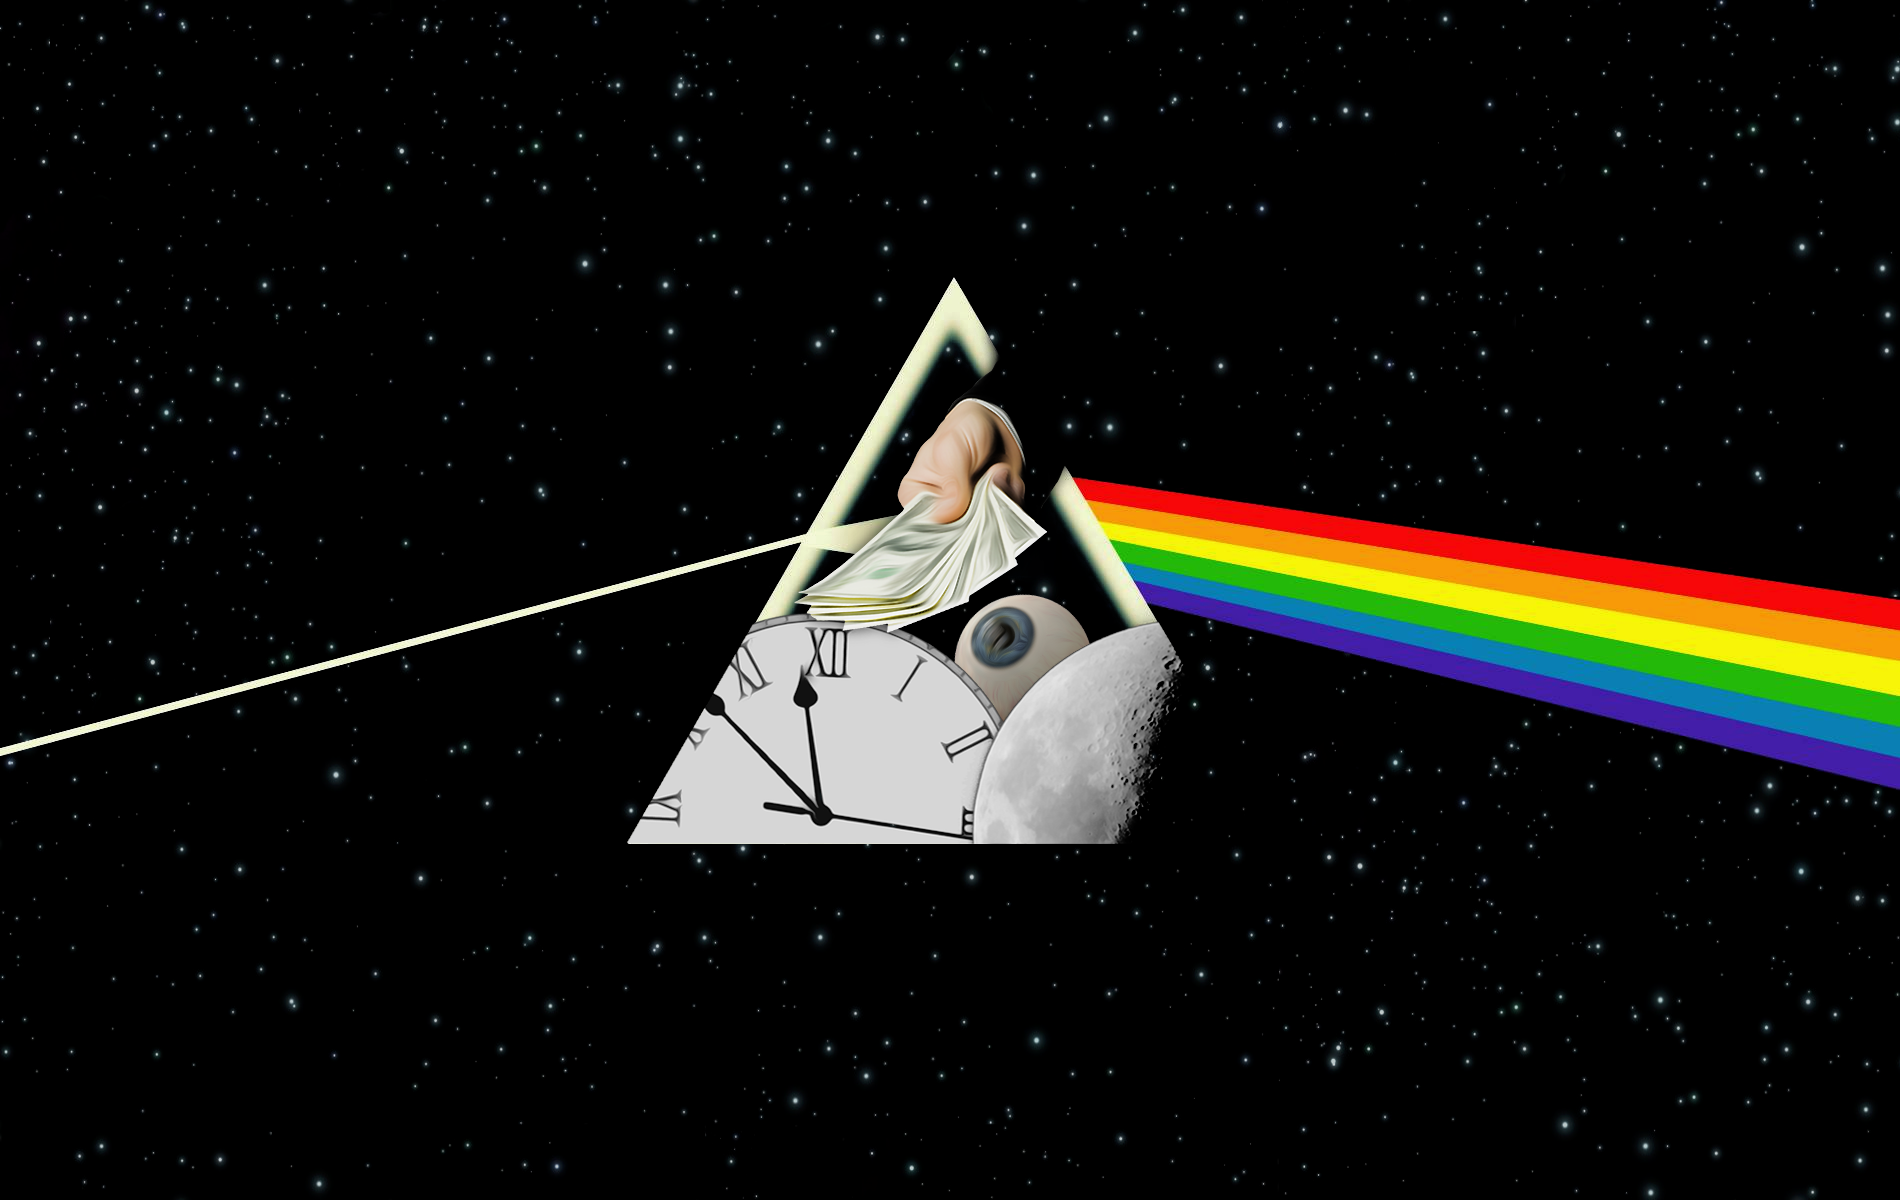 Download Dark Side Of The Moon Wallpaper Gallery 1900x1200